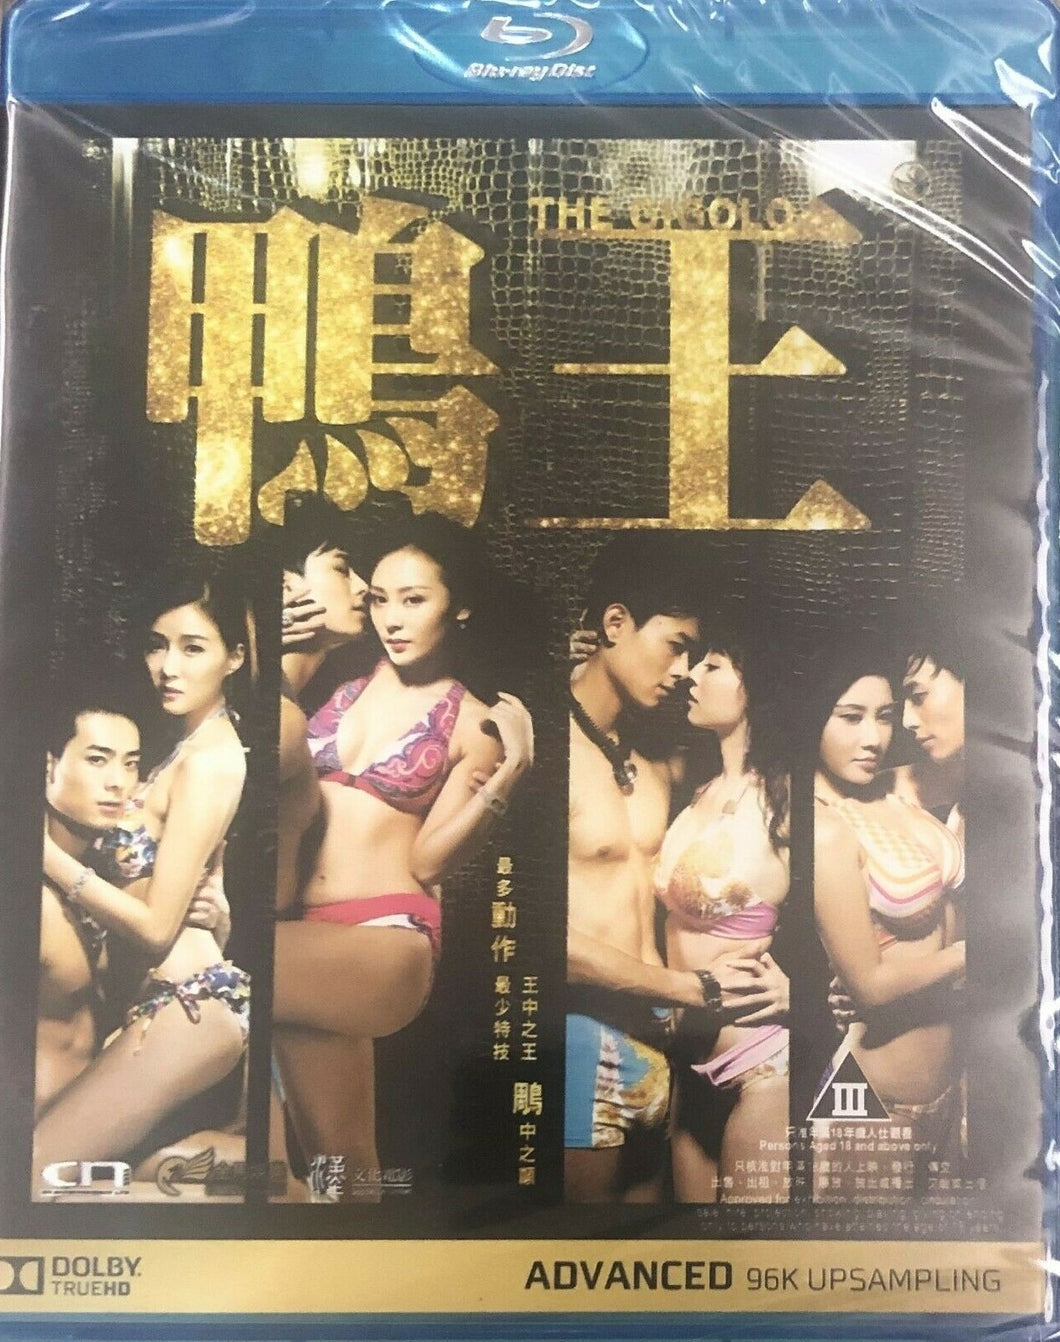 The Gigolo 鴨王 2015 (Hong Kong Movie) BLU-RAY with English Subtitles (Region A)